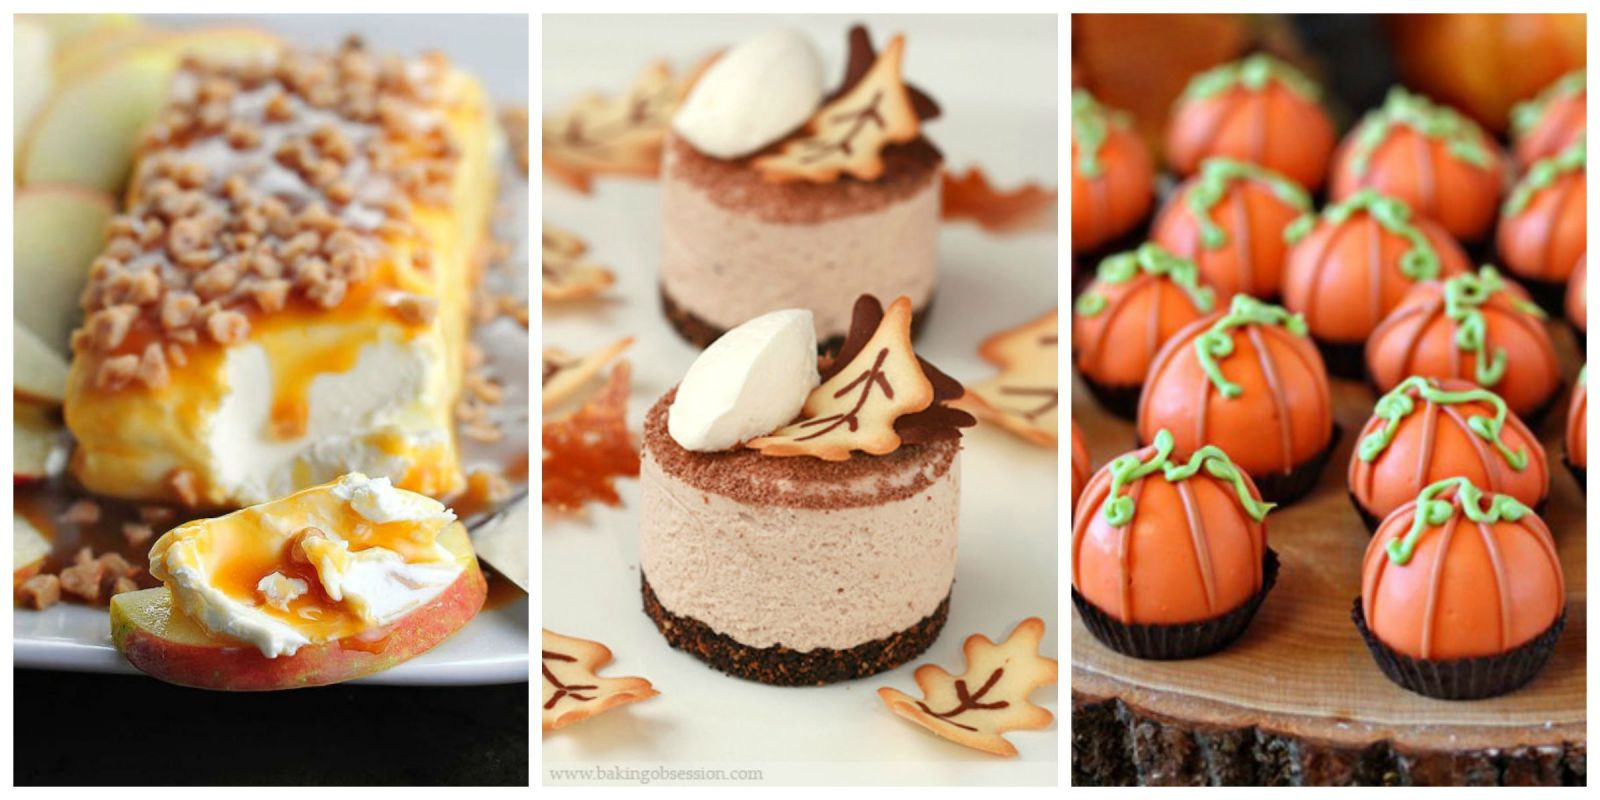 Fall Dessert Recipes  35 Easy Fall Dessert Recipes Best Treats for Autumn Parties